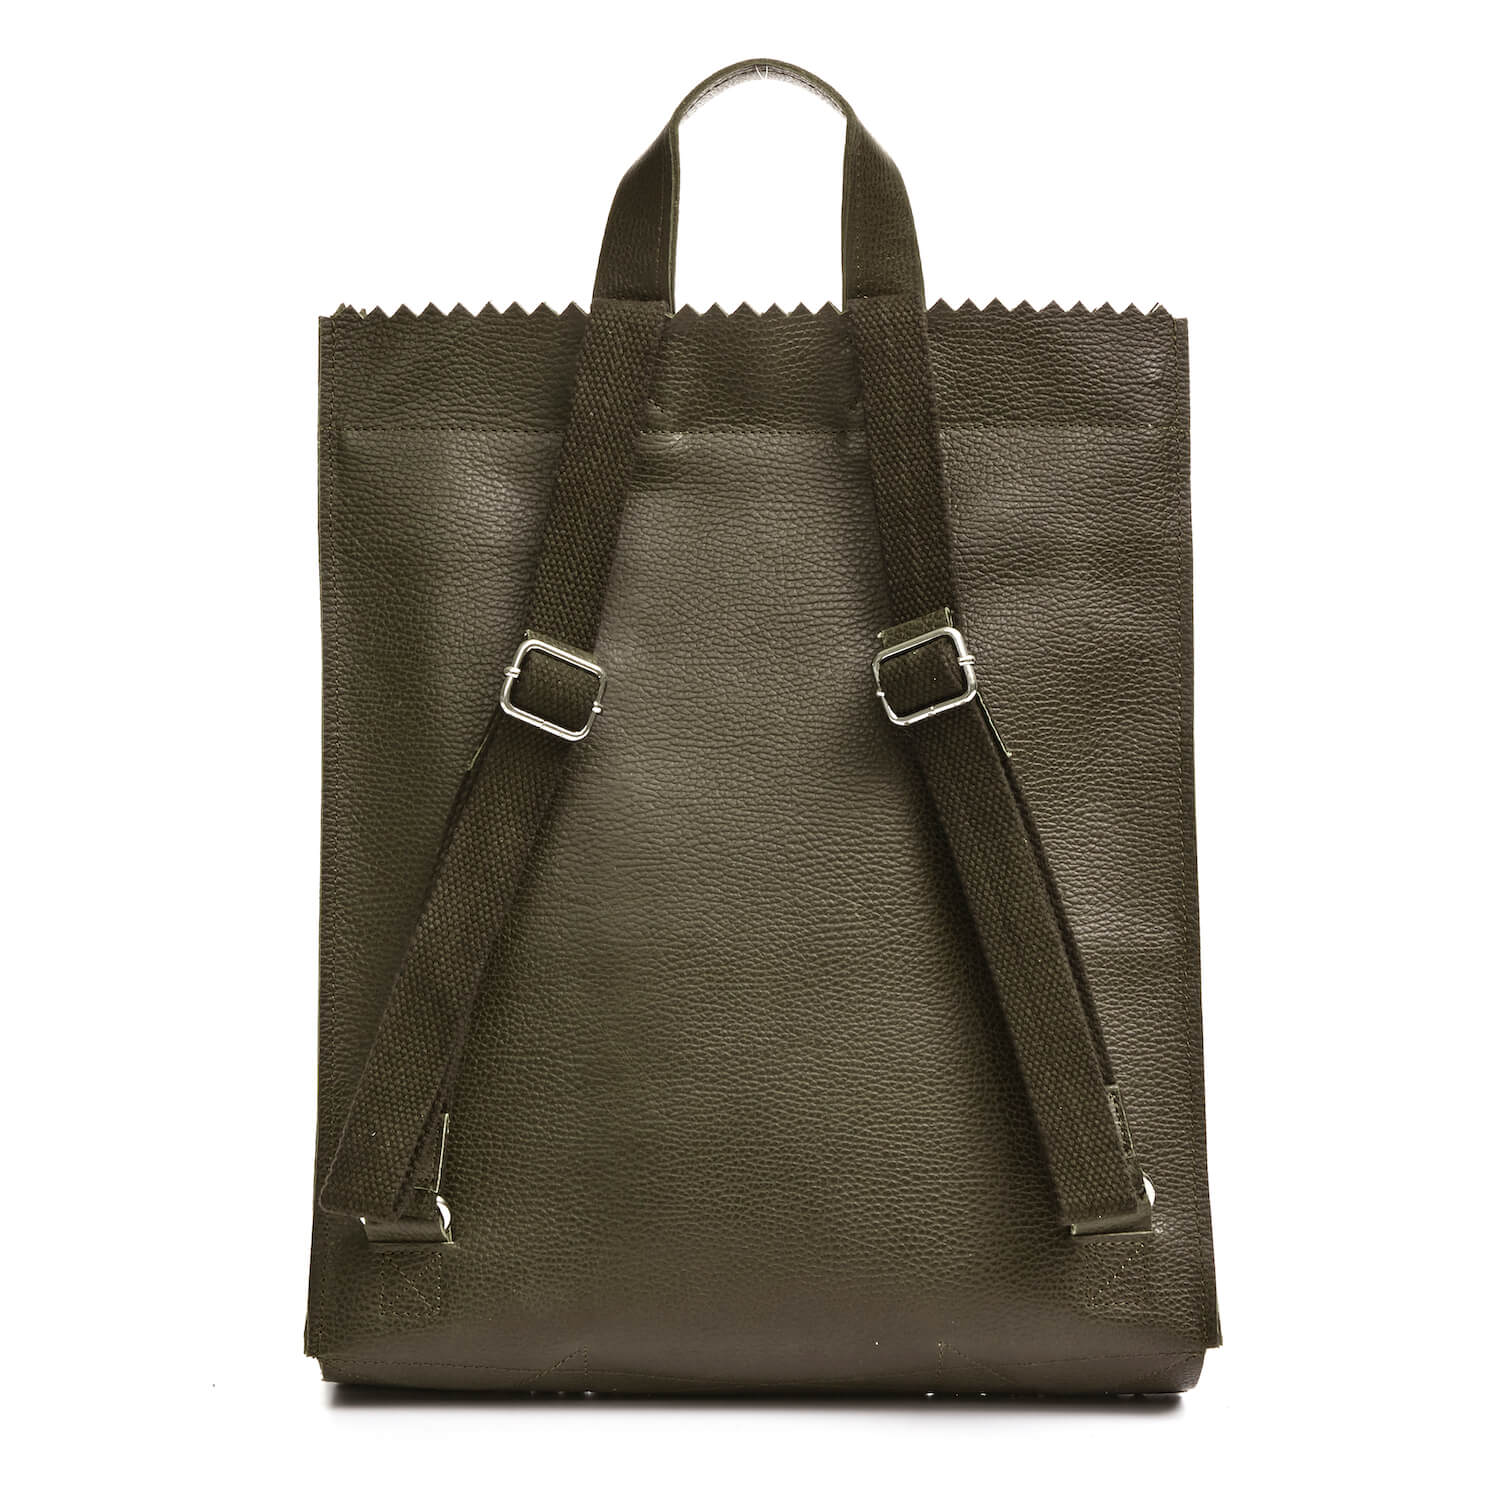 MYOMY - My Paper Bag Back Bag - INGAR